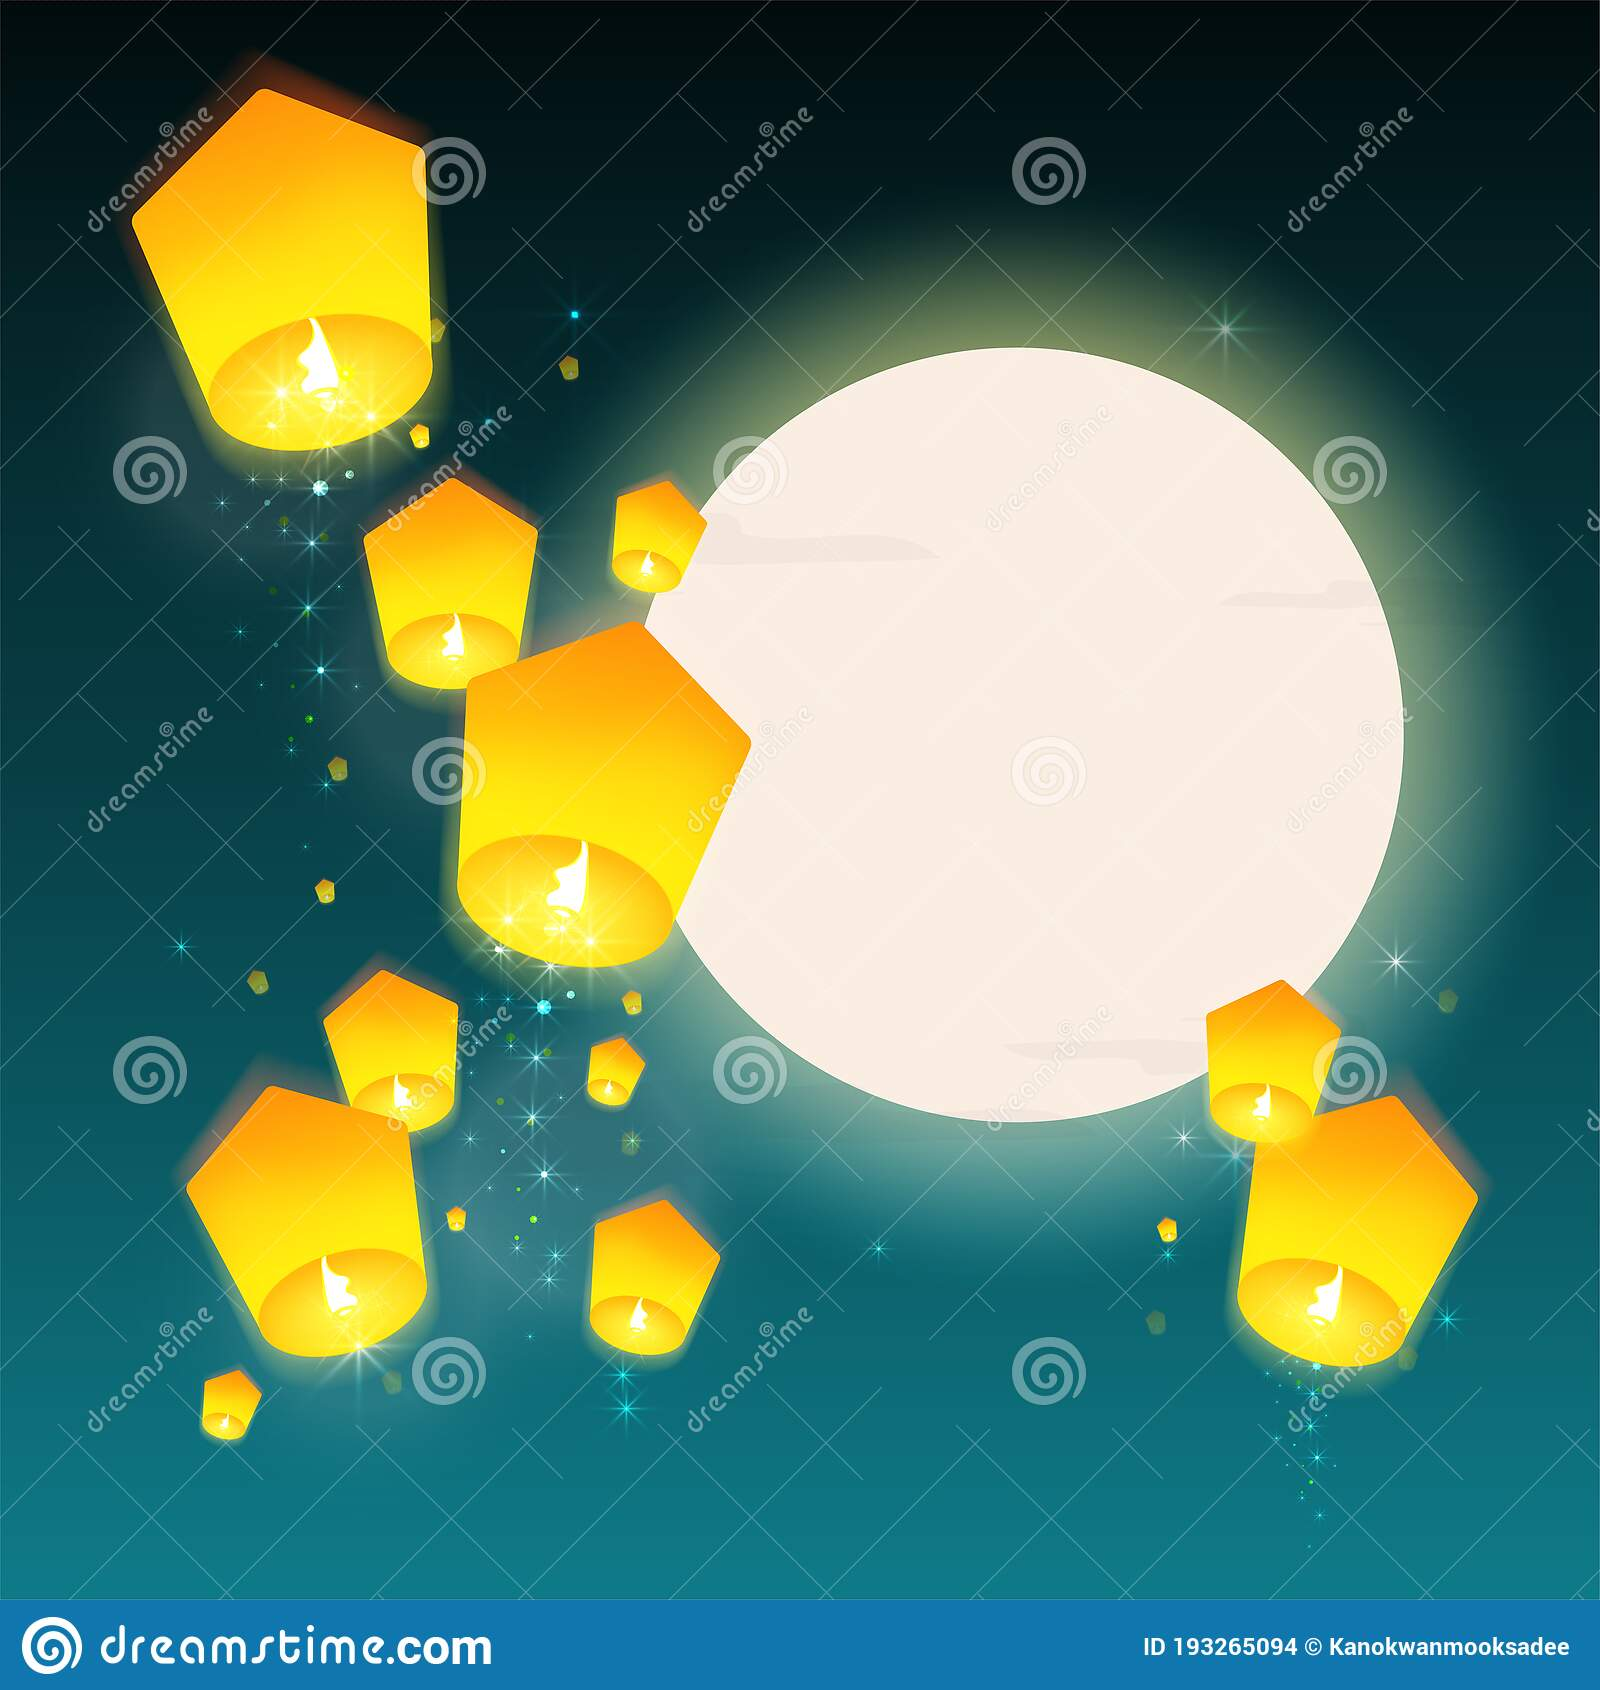 Mid Autumn Festival For Chinese New Year Vector